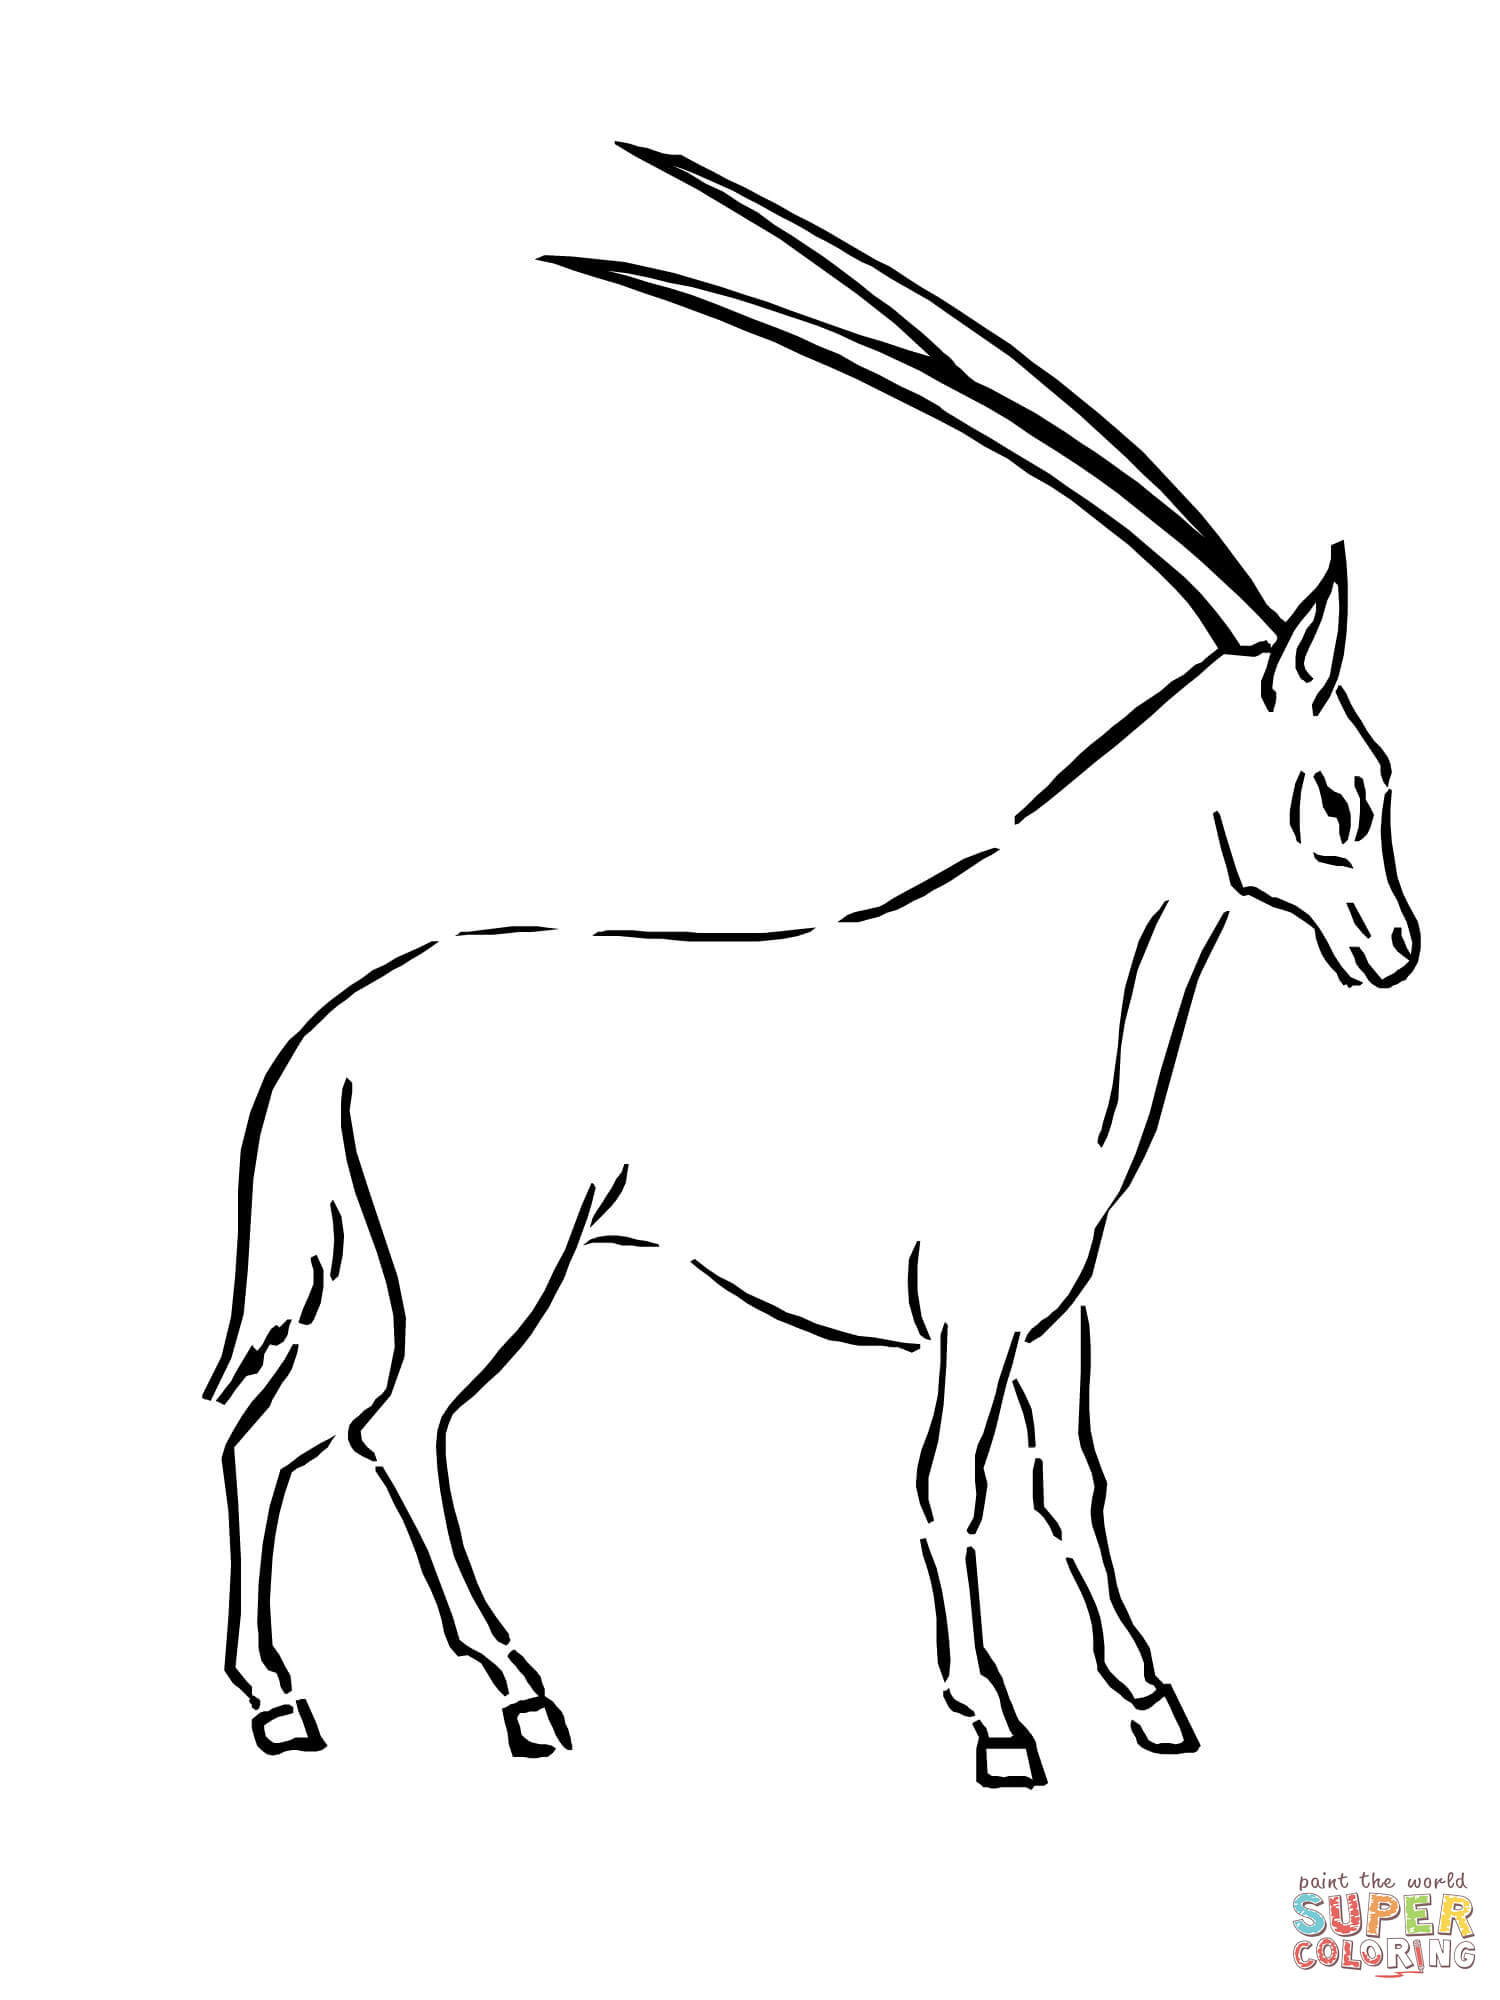 Oryx coloring #10, Download drawings